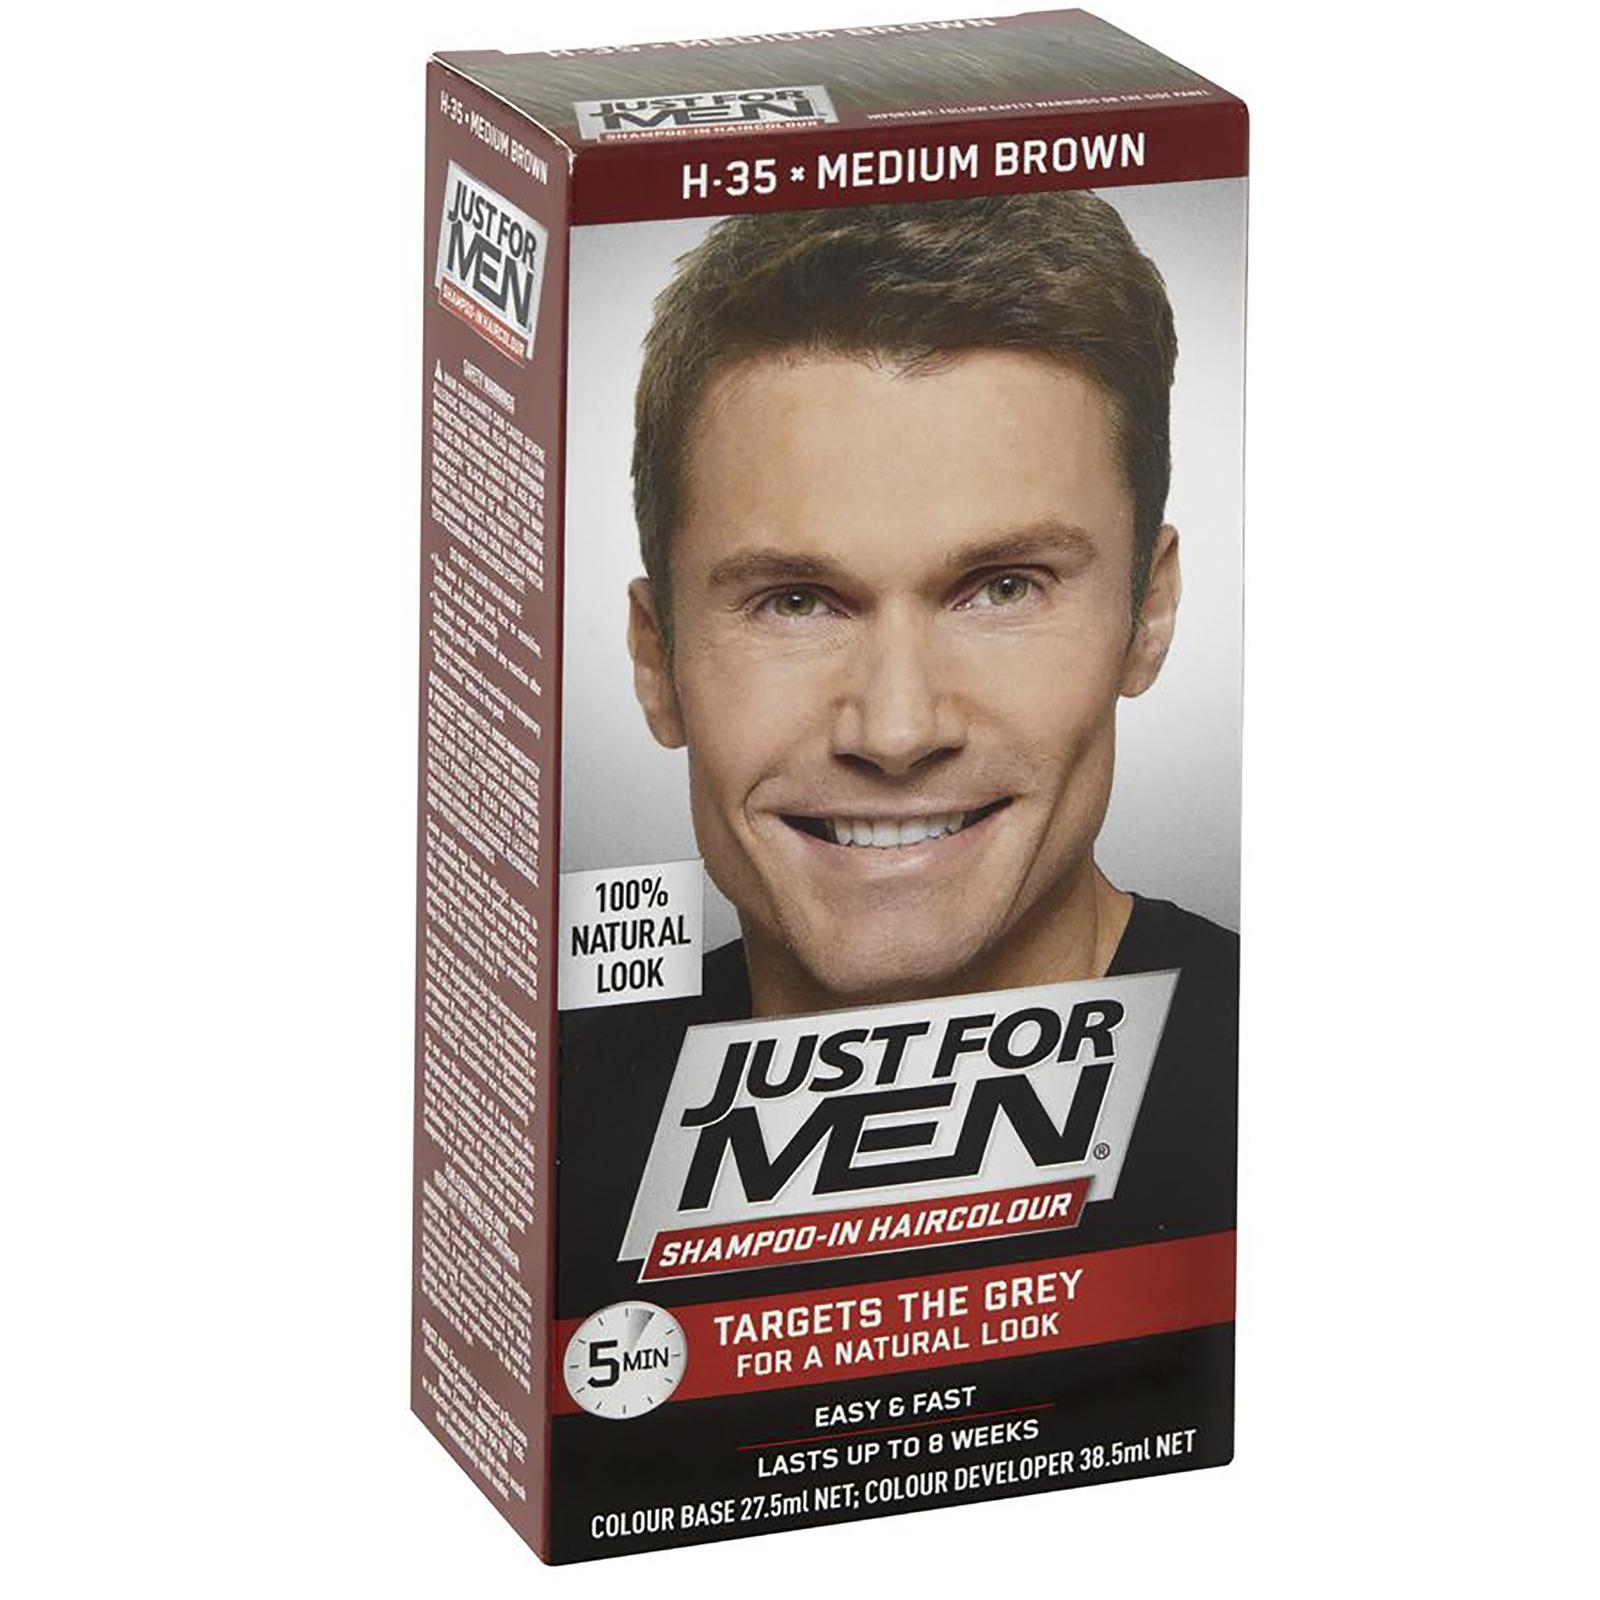 Just For Men Shampoo-In Hair Colour - Medium Brown image